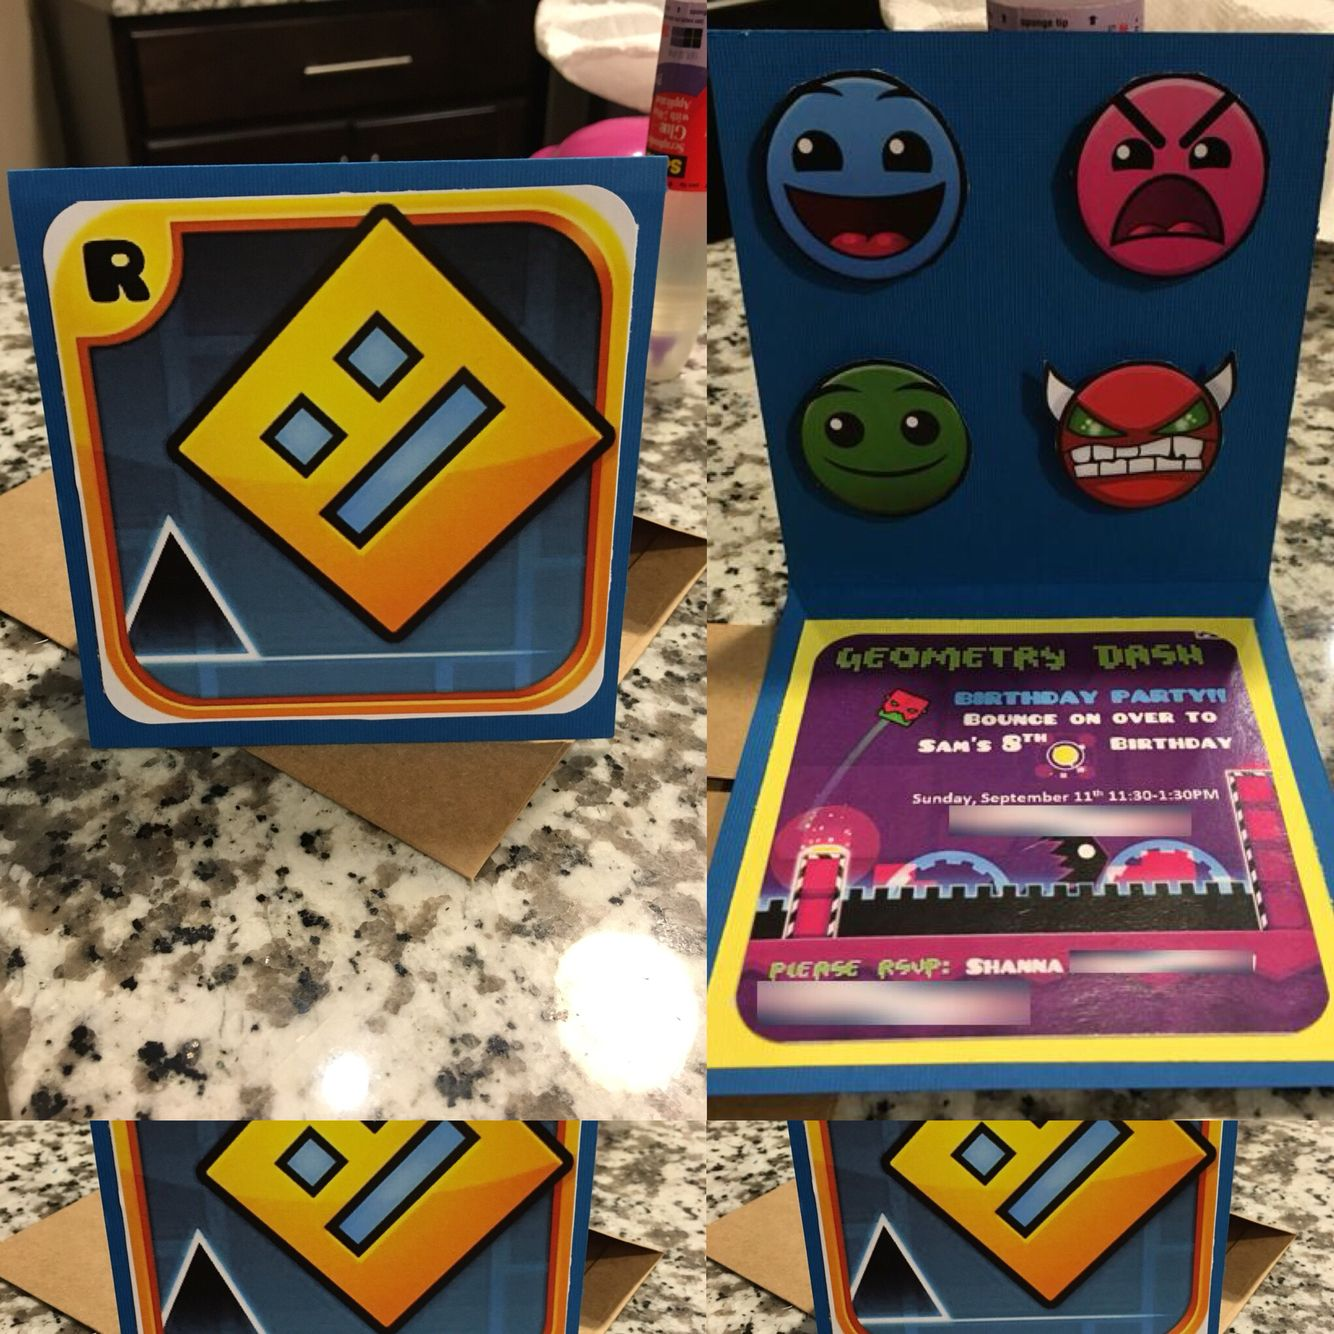 Geometry Dash Birthday Invite Downloaded Pusab Oxygene 1 Font For Free On Line Made Invite Out Of Card 6th Birthday Parties Geometry Birthday Invitations